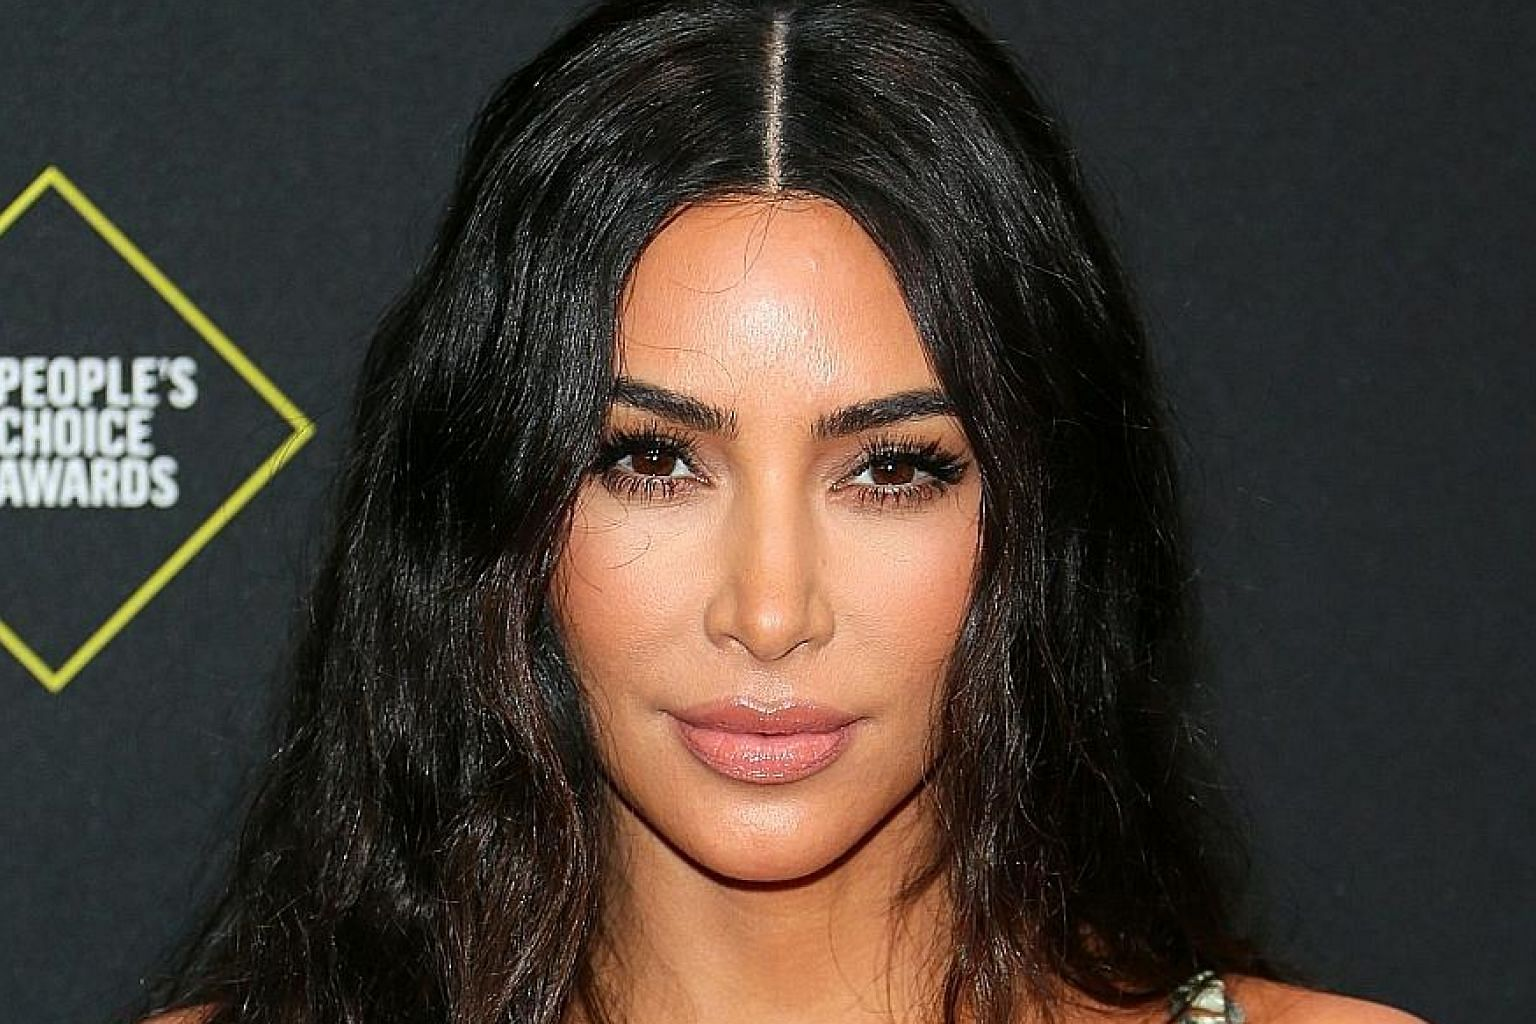 Kim Kardashian West has frozen her Facebook and Instagram accounts for 24 hours since yesterday to urge Facebook to curb the spread of hate and propaganda.